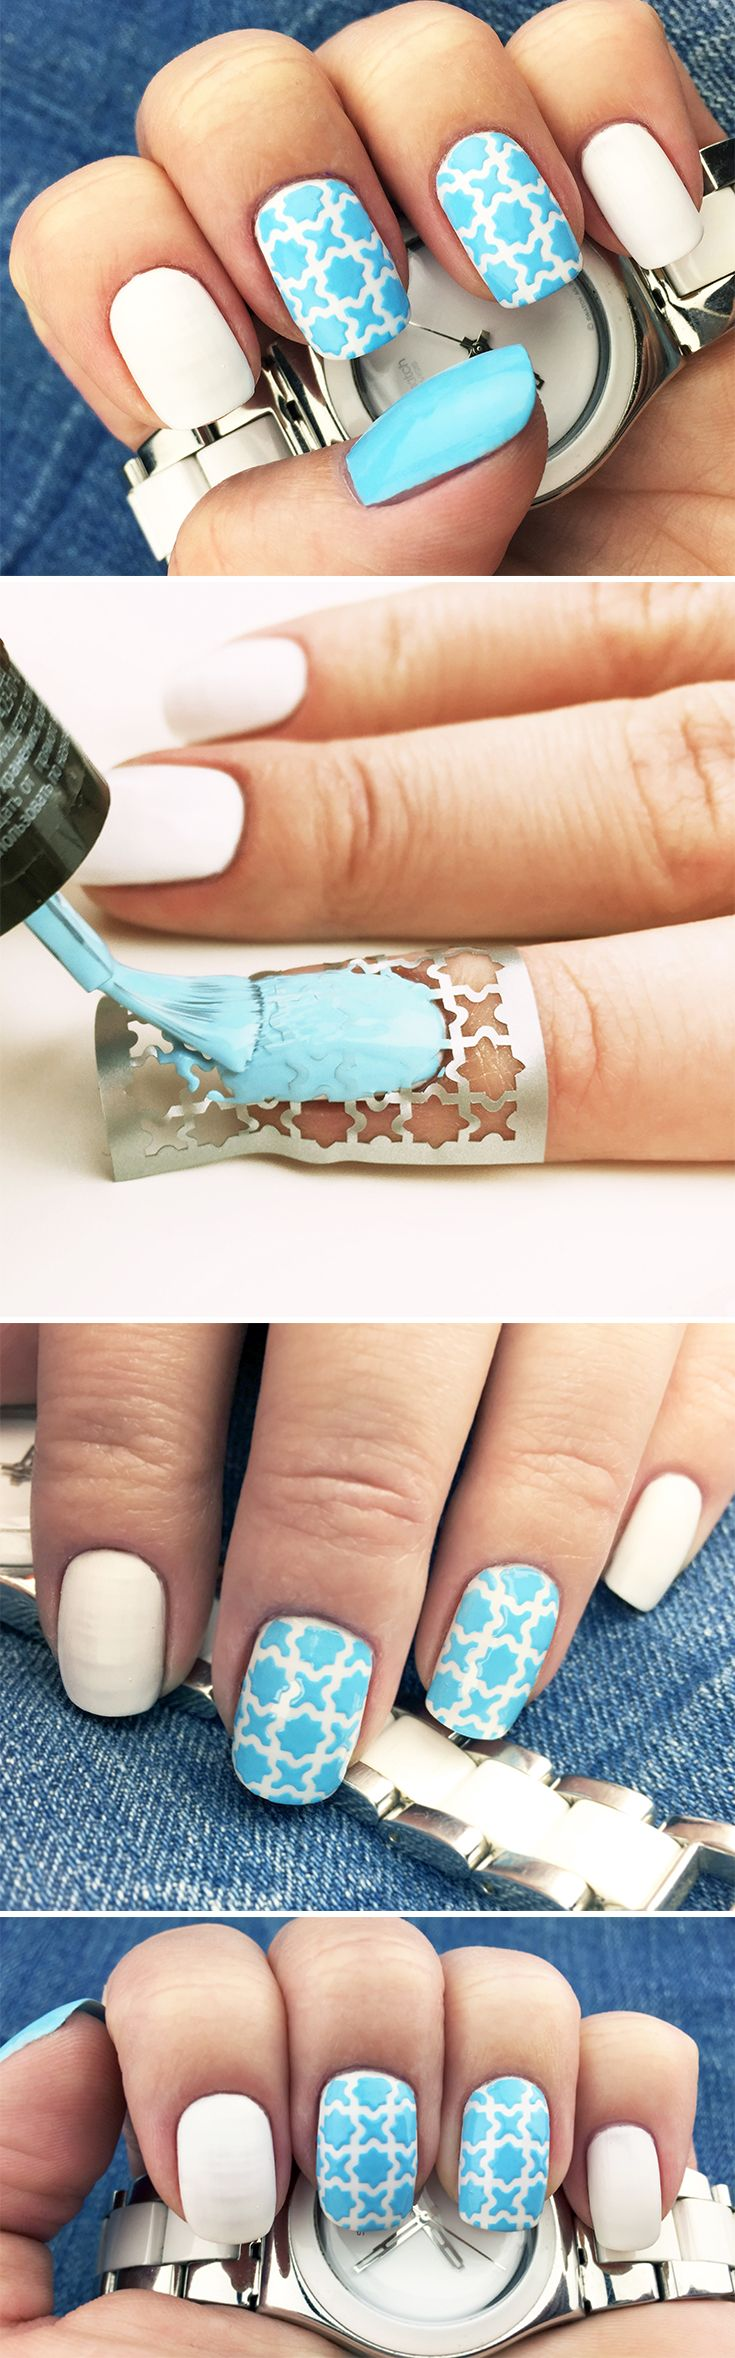 26 Best Nail Art Ideas With Unail Stencils Images On Pinterest